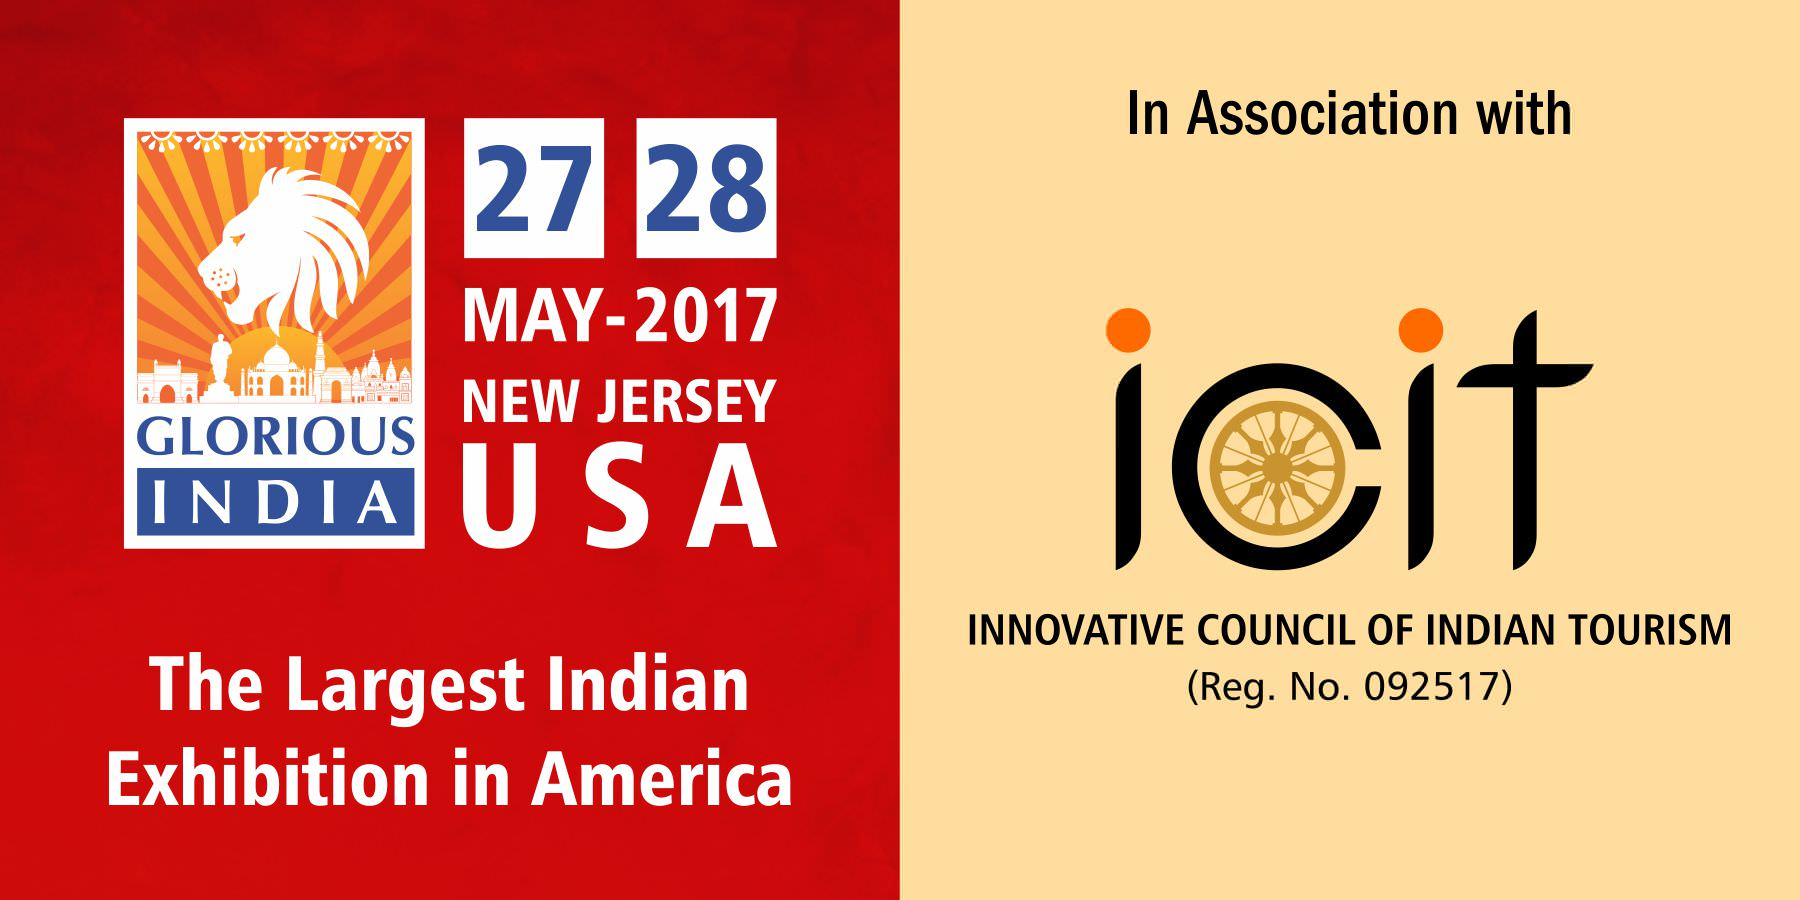 Glorious India Expo in Association with Innovative Council of Indian Tourism (ICIT)